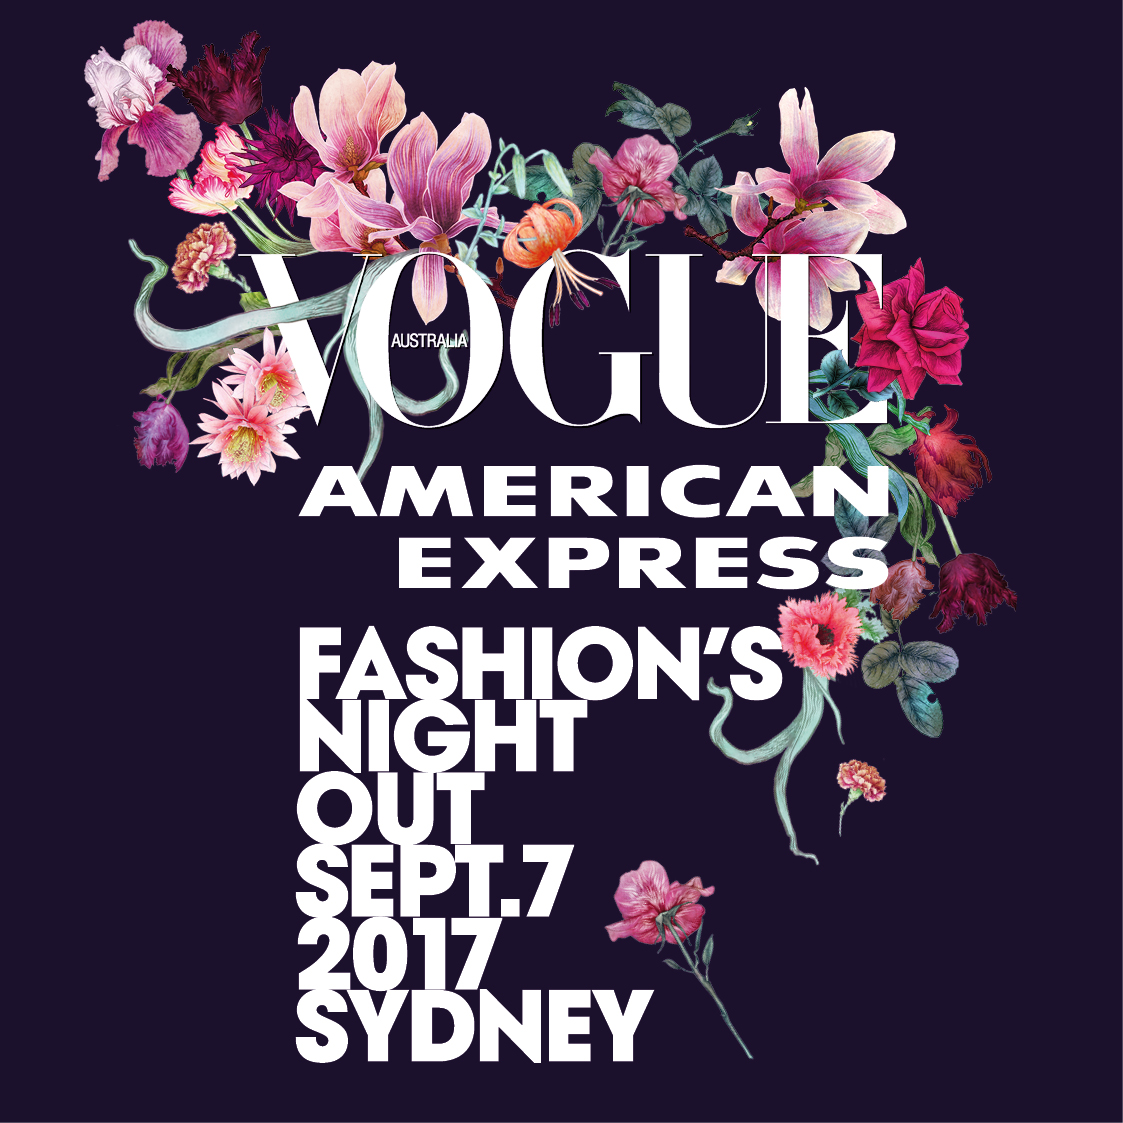 Vogue Fashion's Night Out Australia